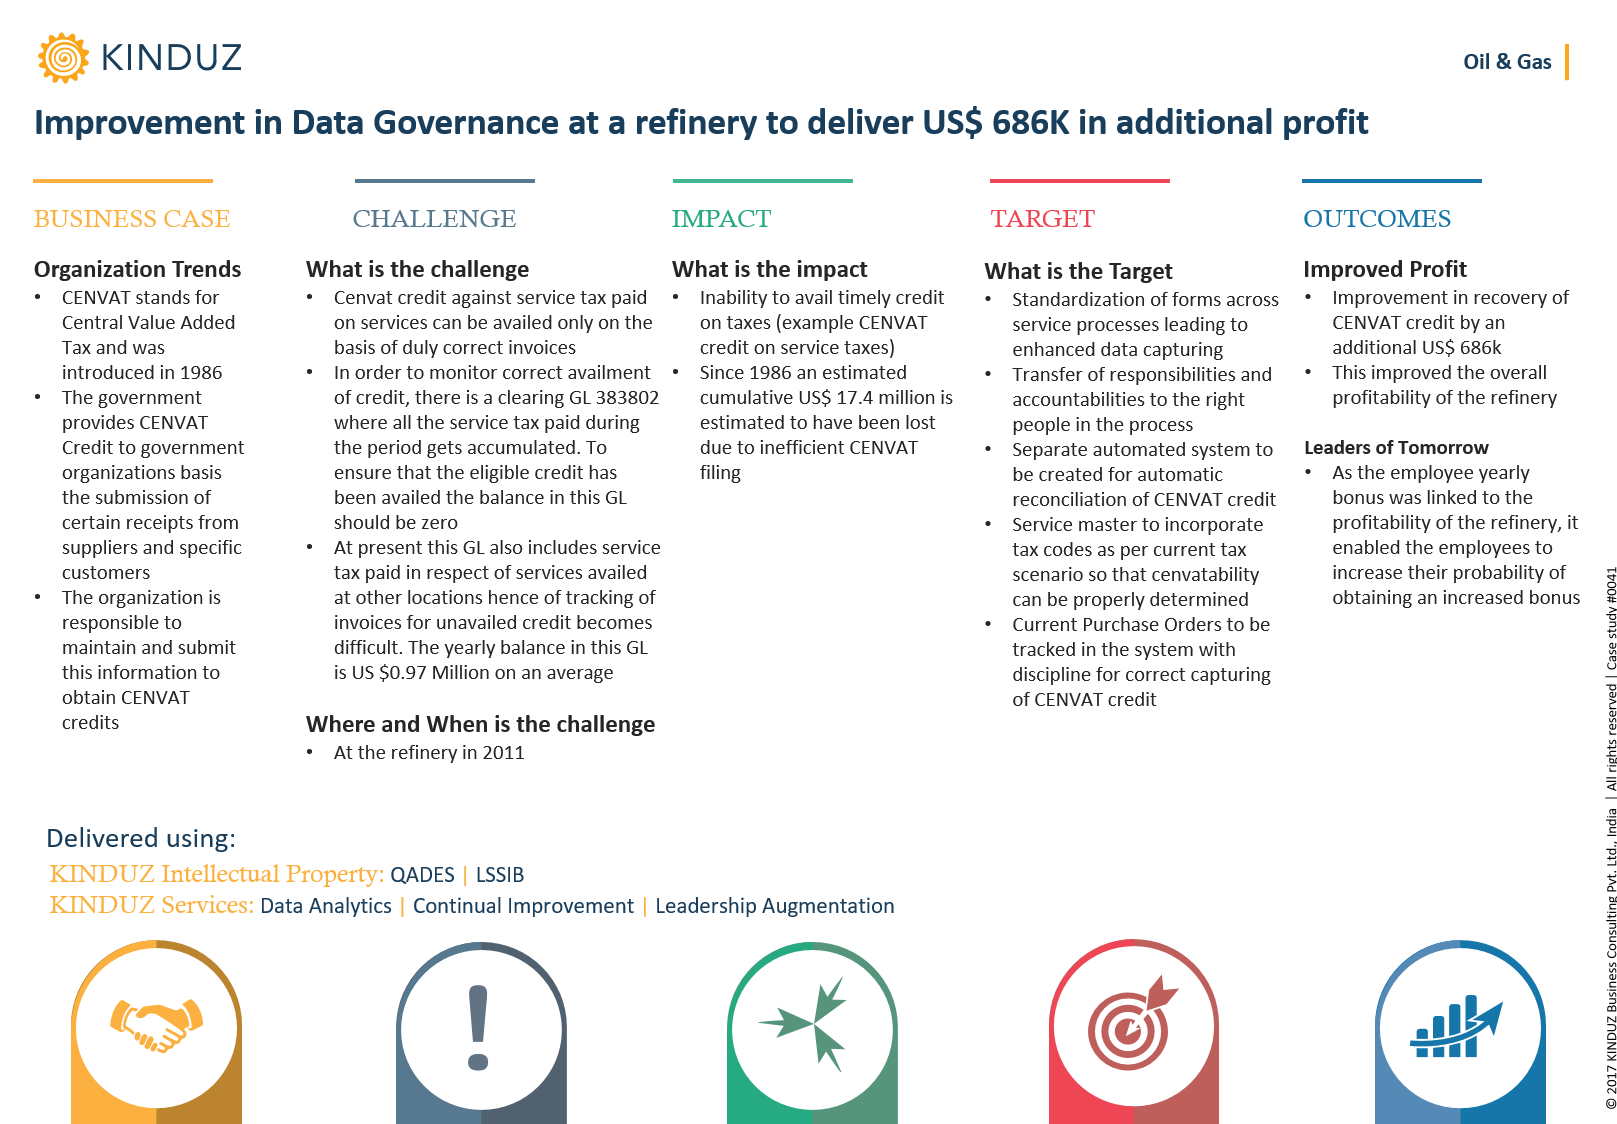 improvement-in-data-governance-at-a-refinery-to-deliver-us-686k-in-additional-profit